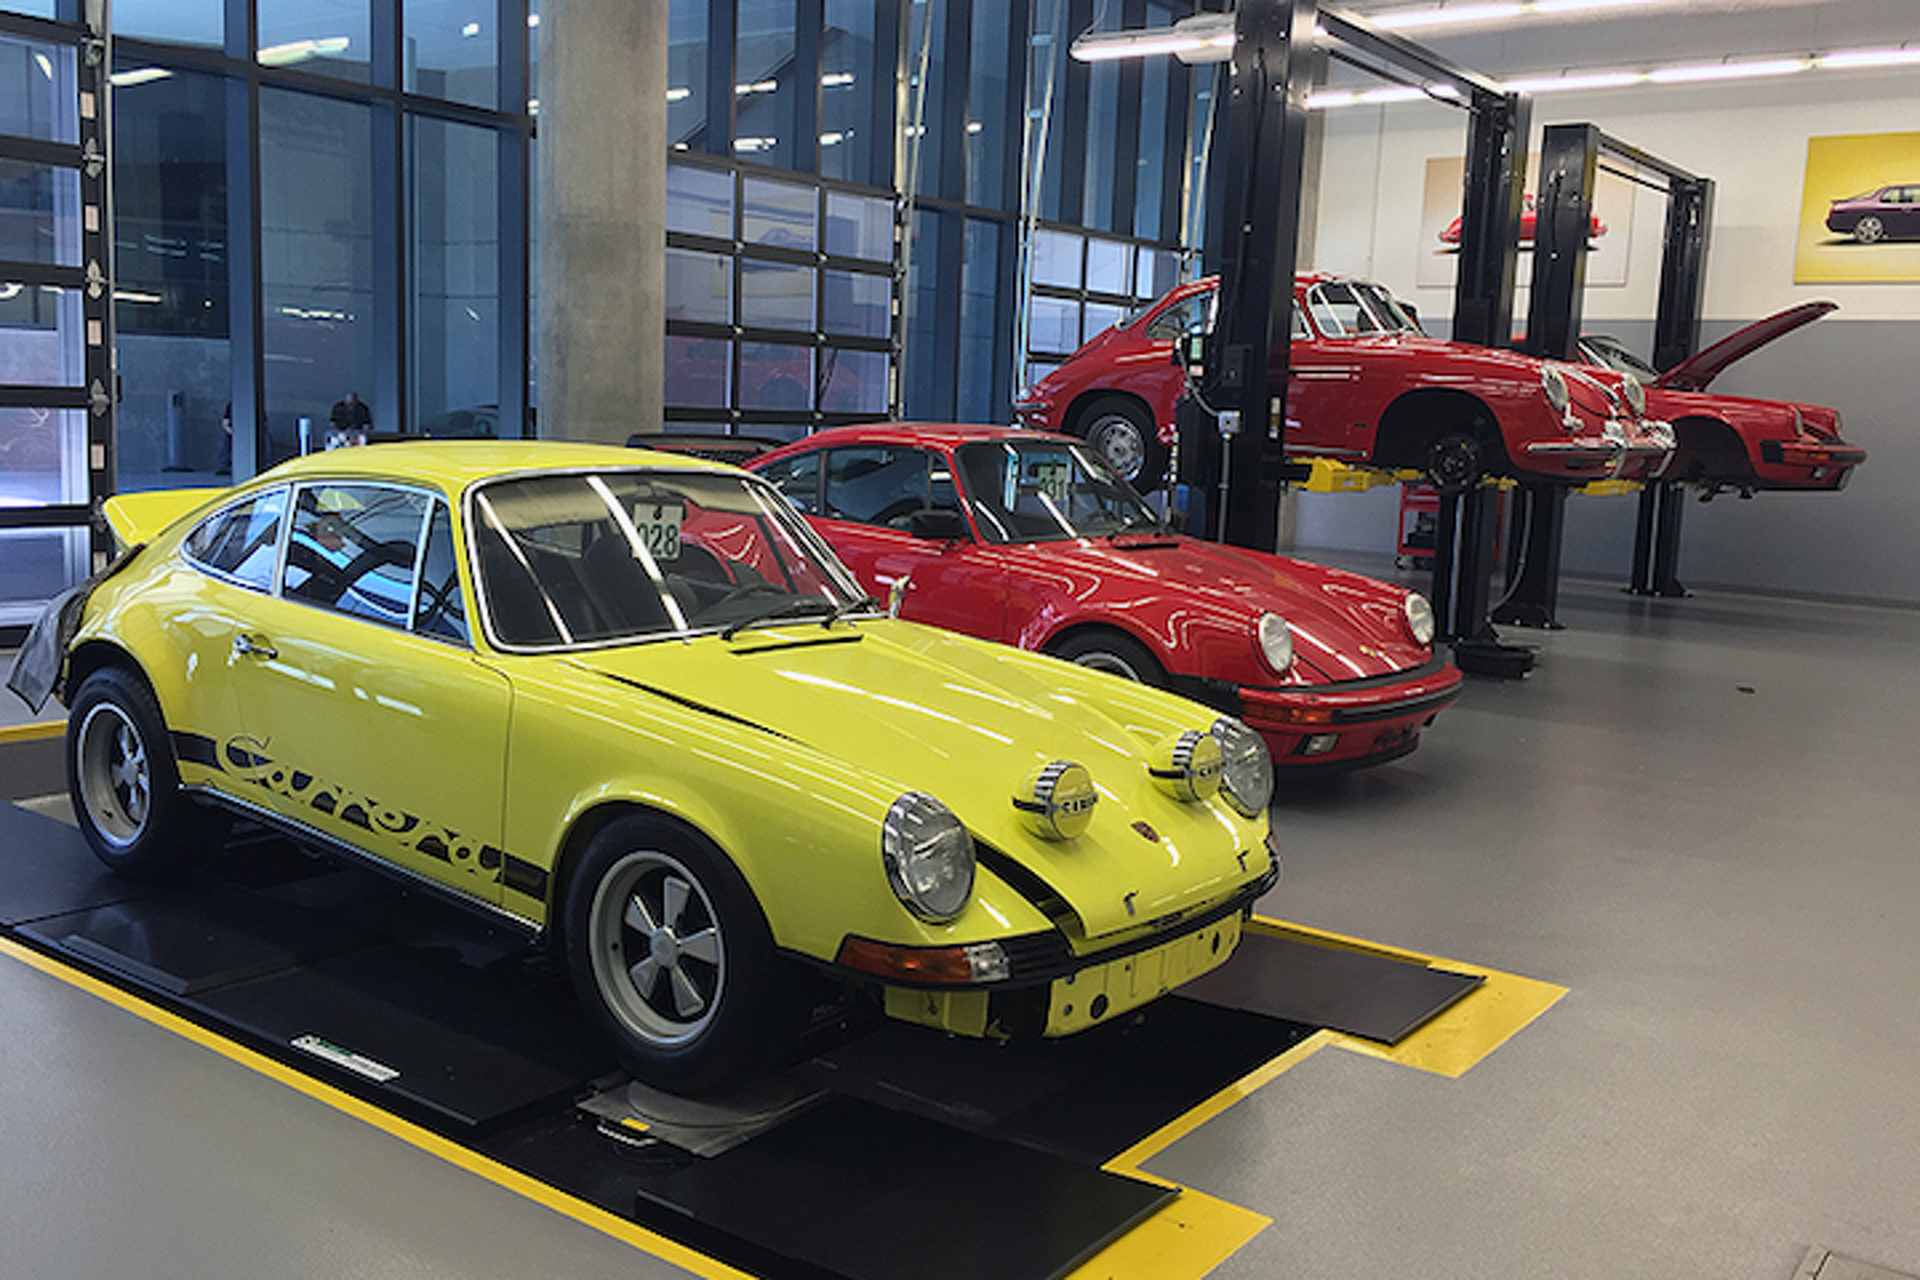 Your Guide to Visiting Porsche's North American Headquarters